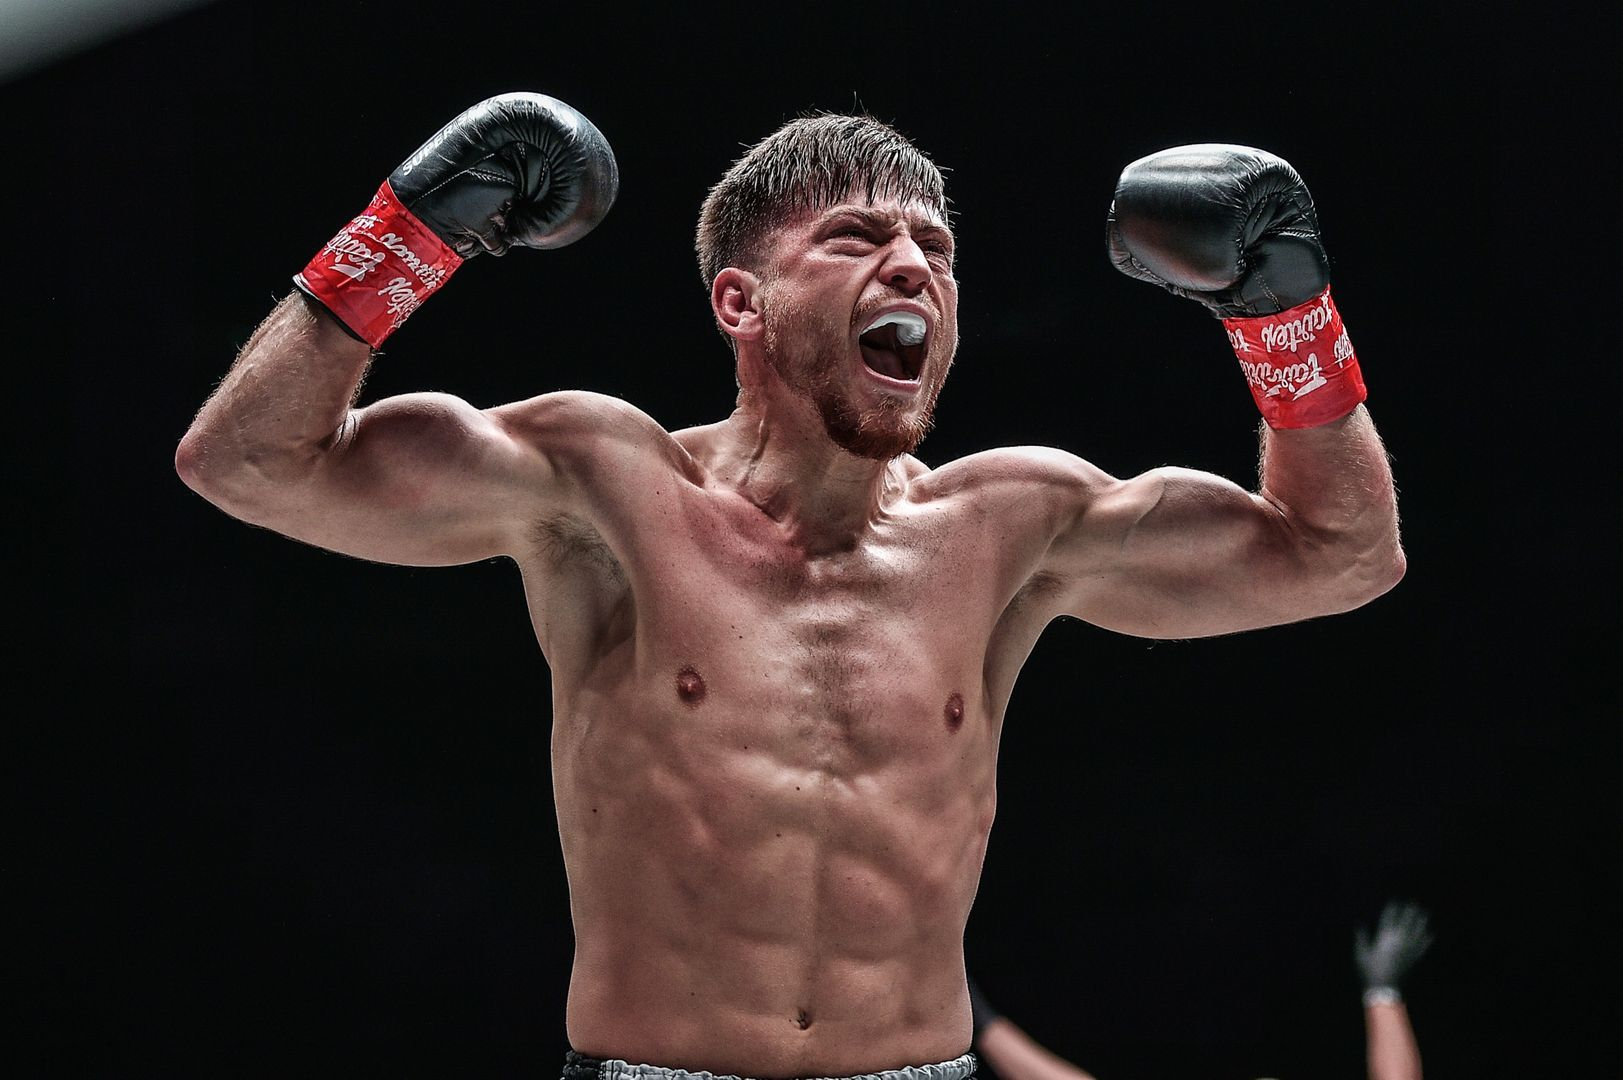 German kickboxer Enriko Kehl flexes hard following his win over Armen Petrosyan